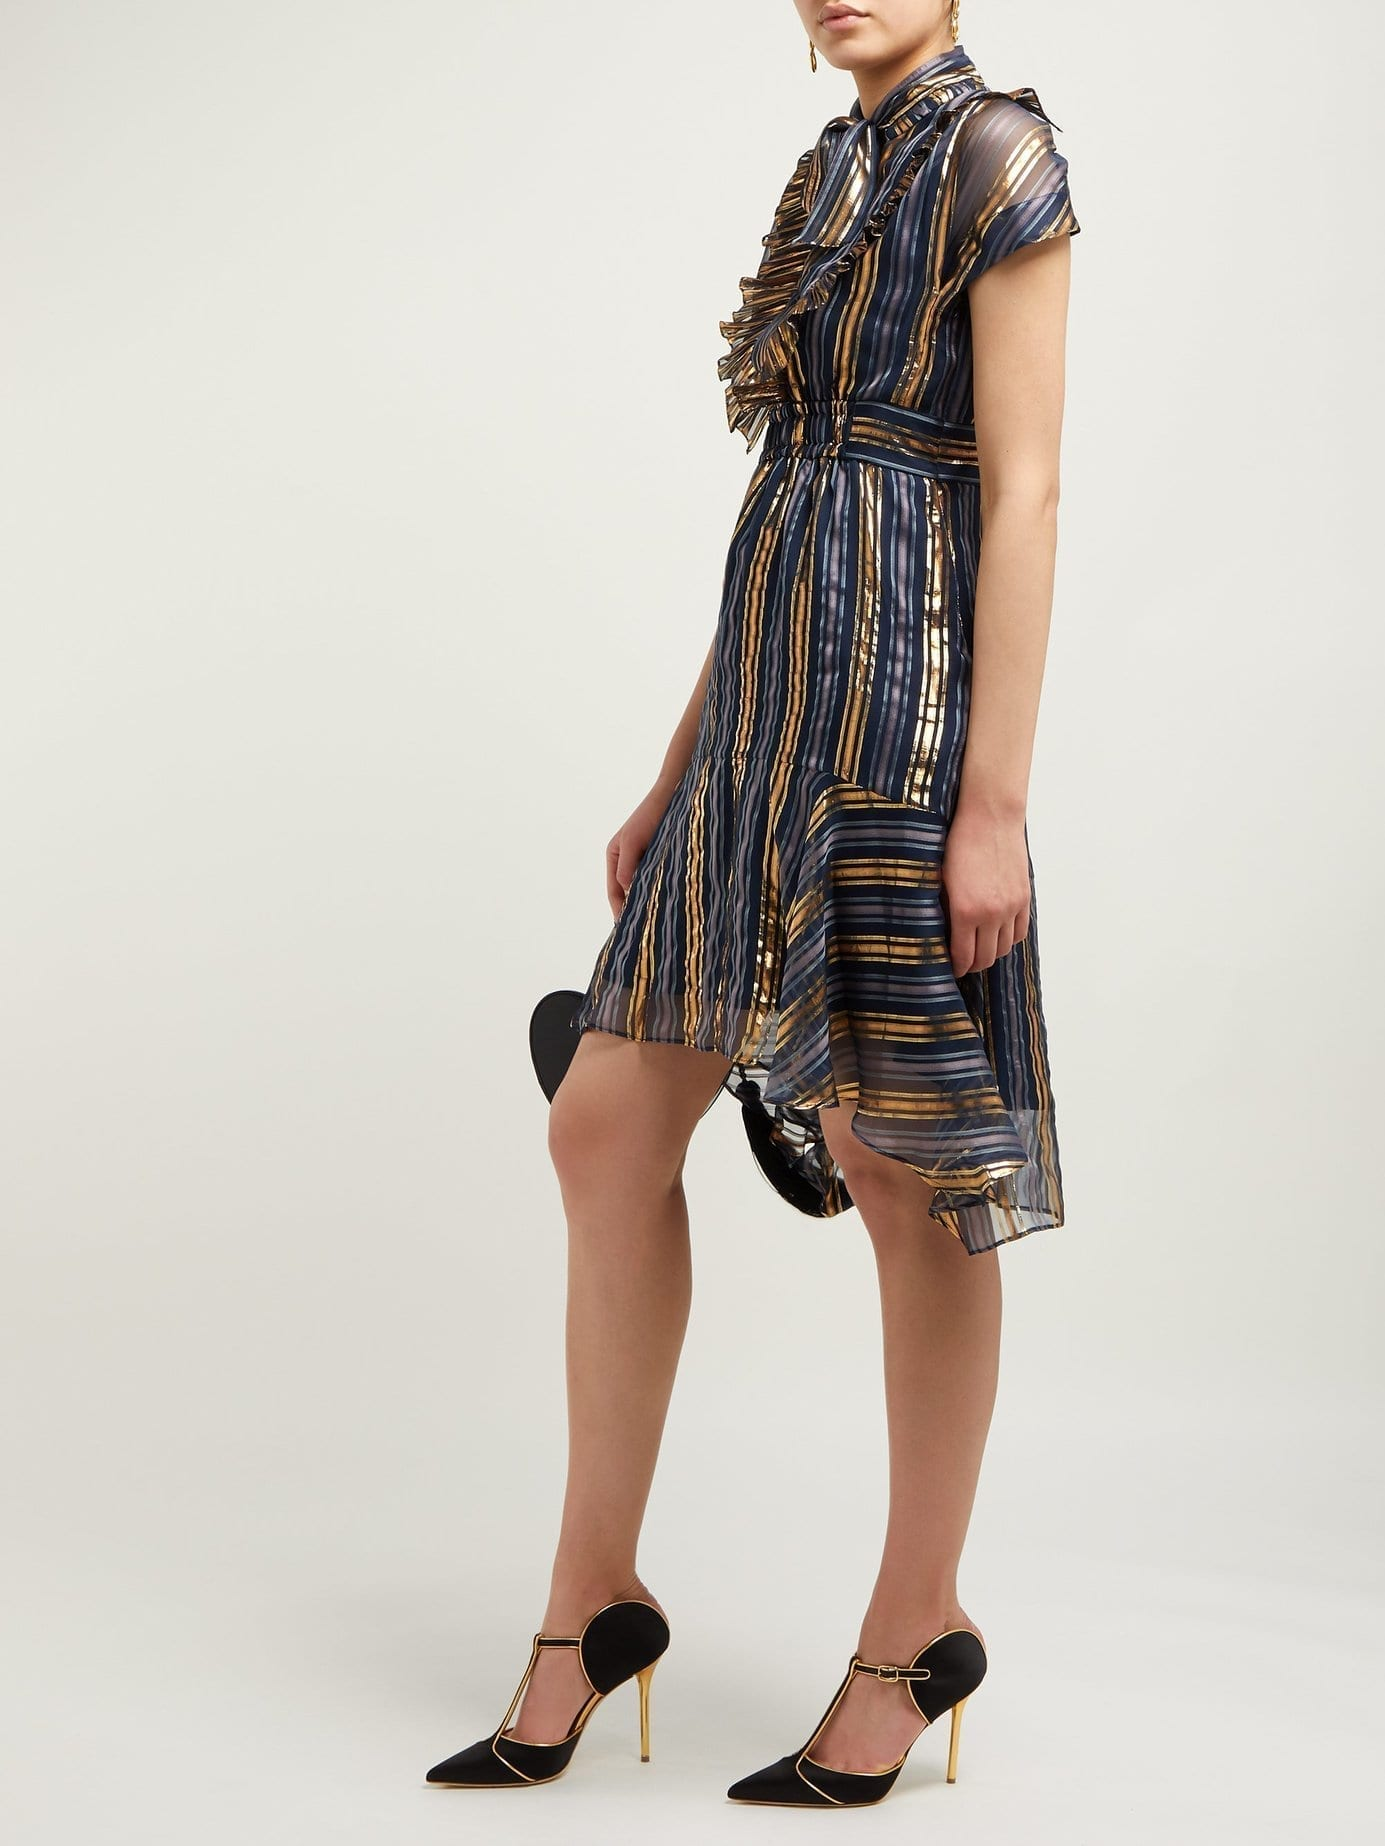 PETER PILOTTO Metallic Striped Silk-blend Chiffon Gold Dress